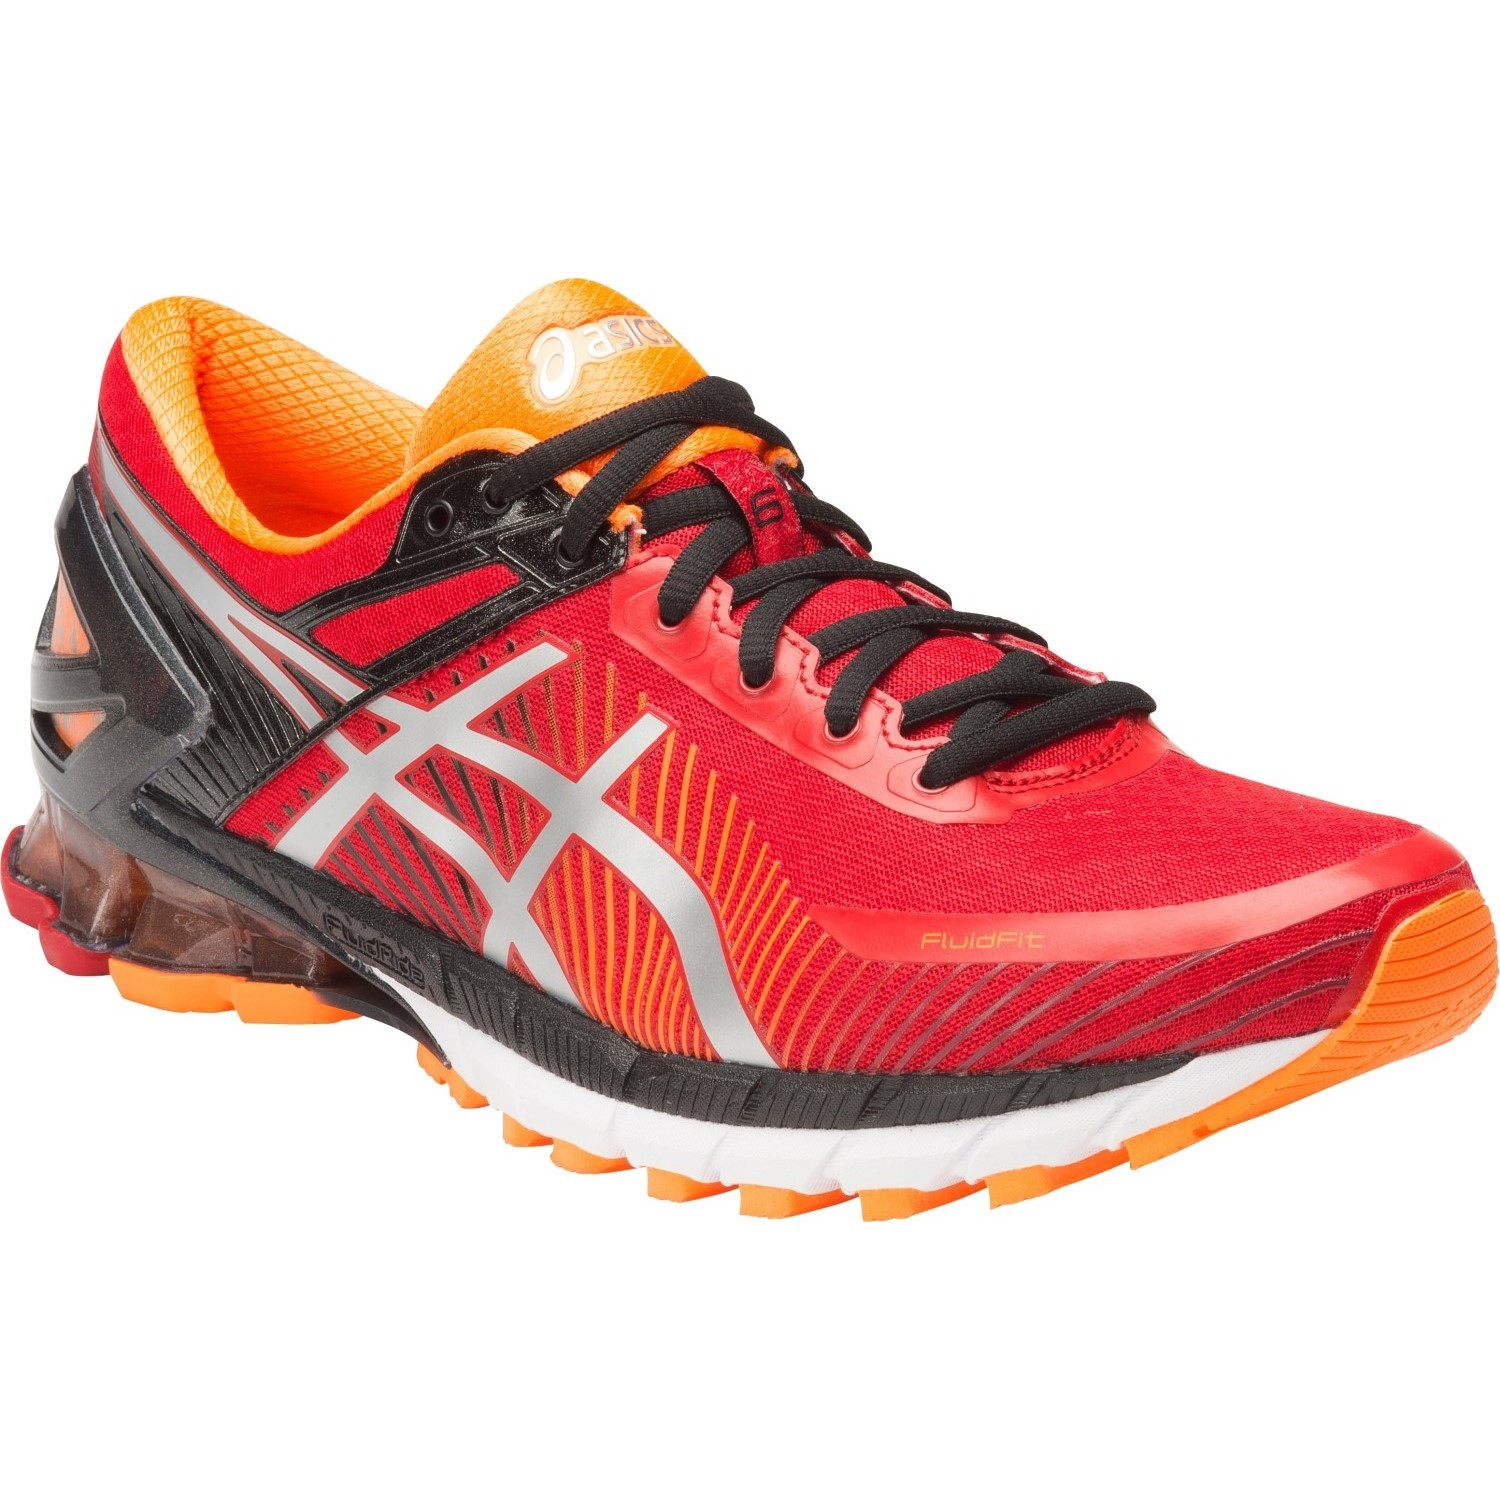 asics kinsei 6 mens running shoes true red silver hot. Black Bedroom Furniture Sets. Home Design Ideas